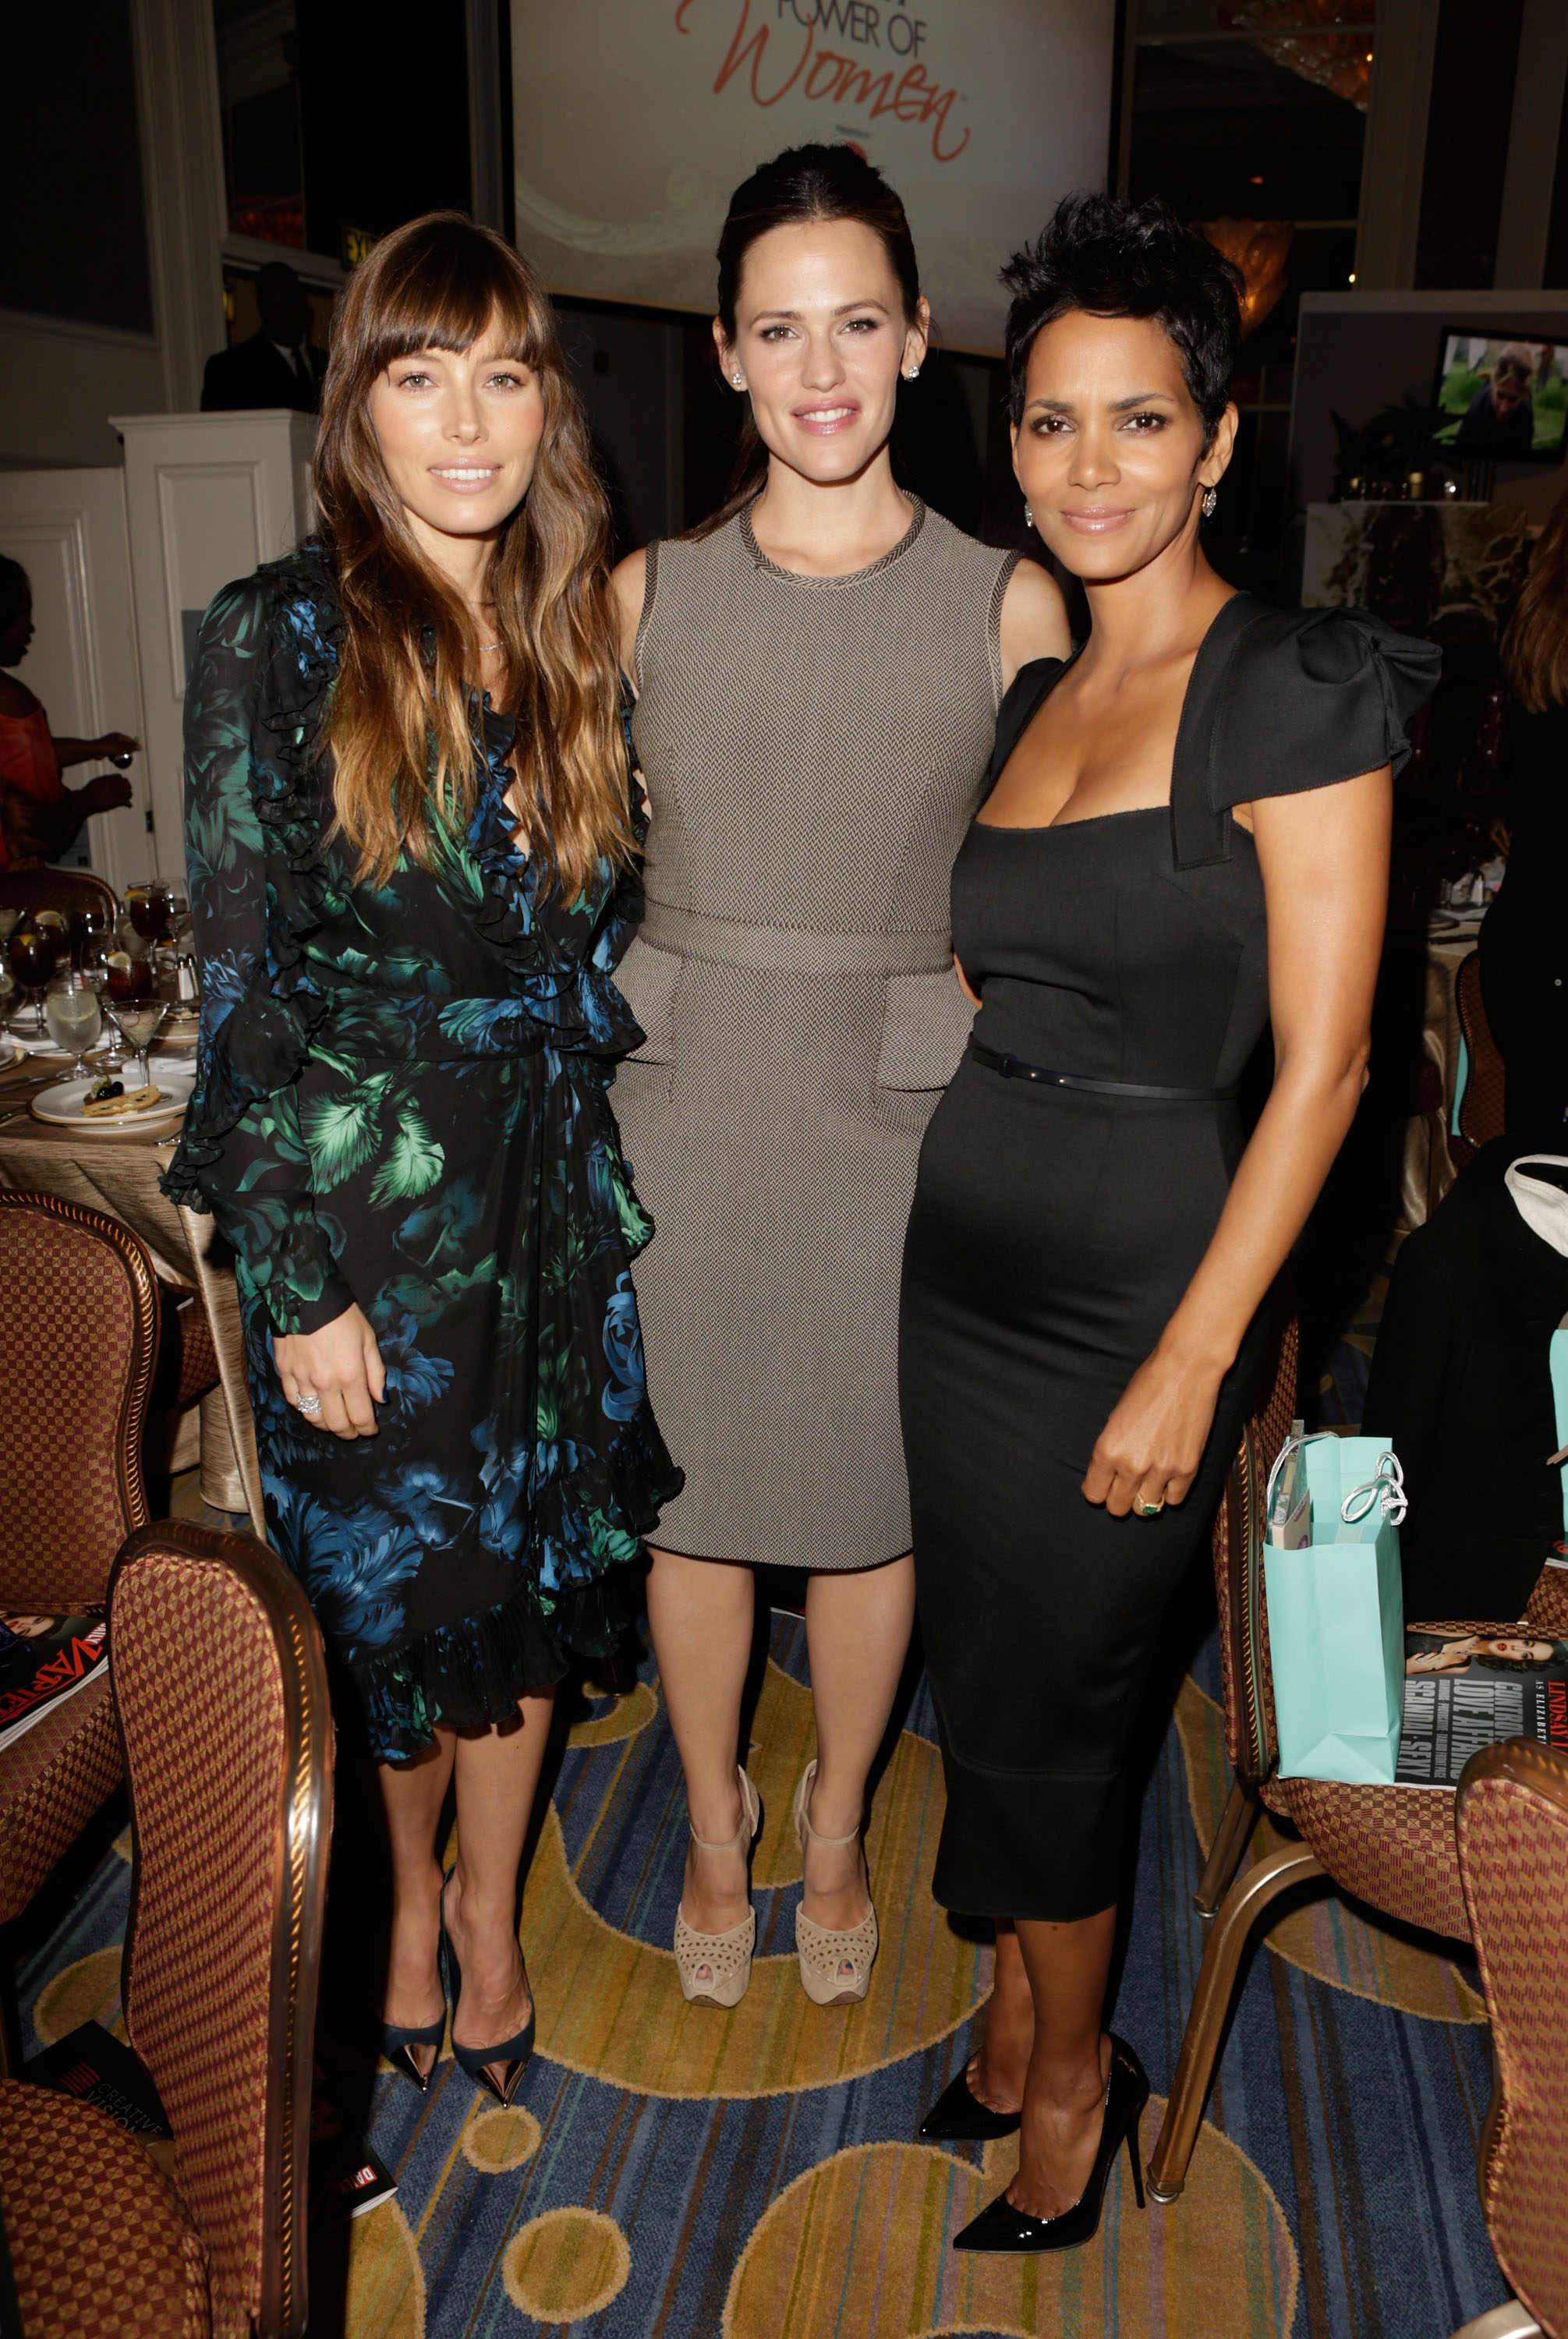 Jessica Biel met up with Halle Berry and Jennifer Garner.